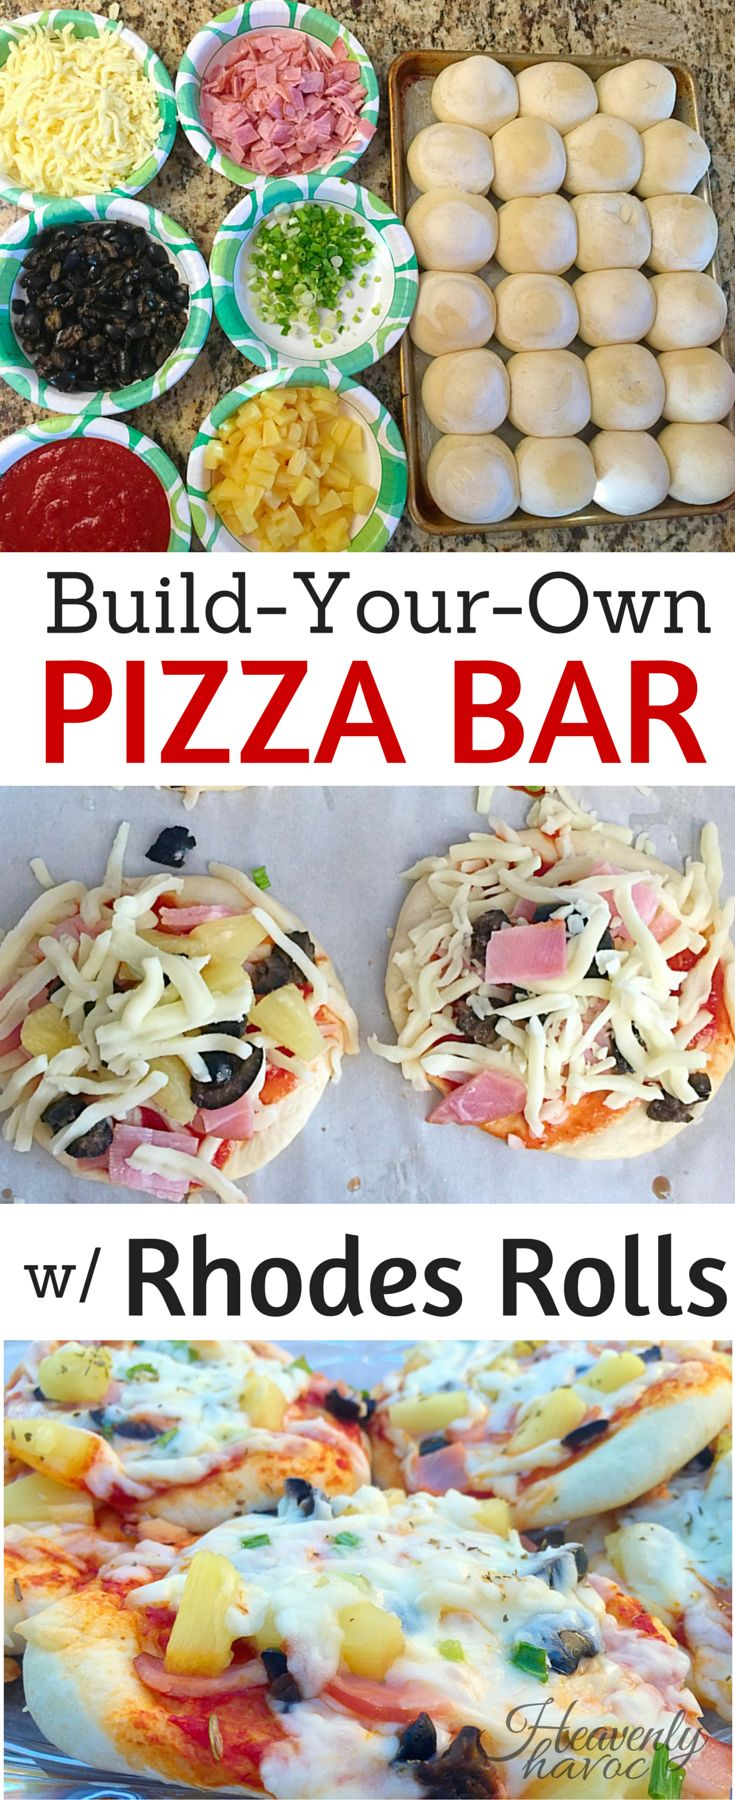 Build your own pizza bar has become a tradition at our house on friday nights. To make these even easier, we use Rhodes frozen dinner rolls!